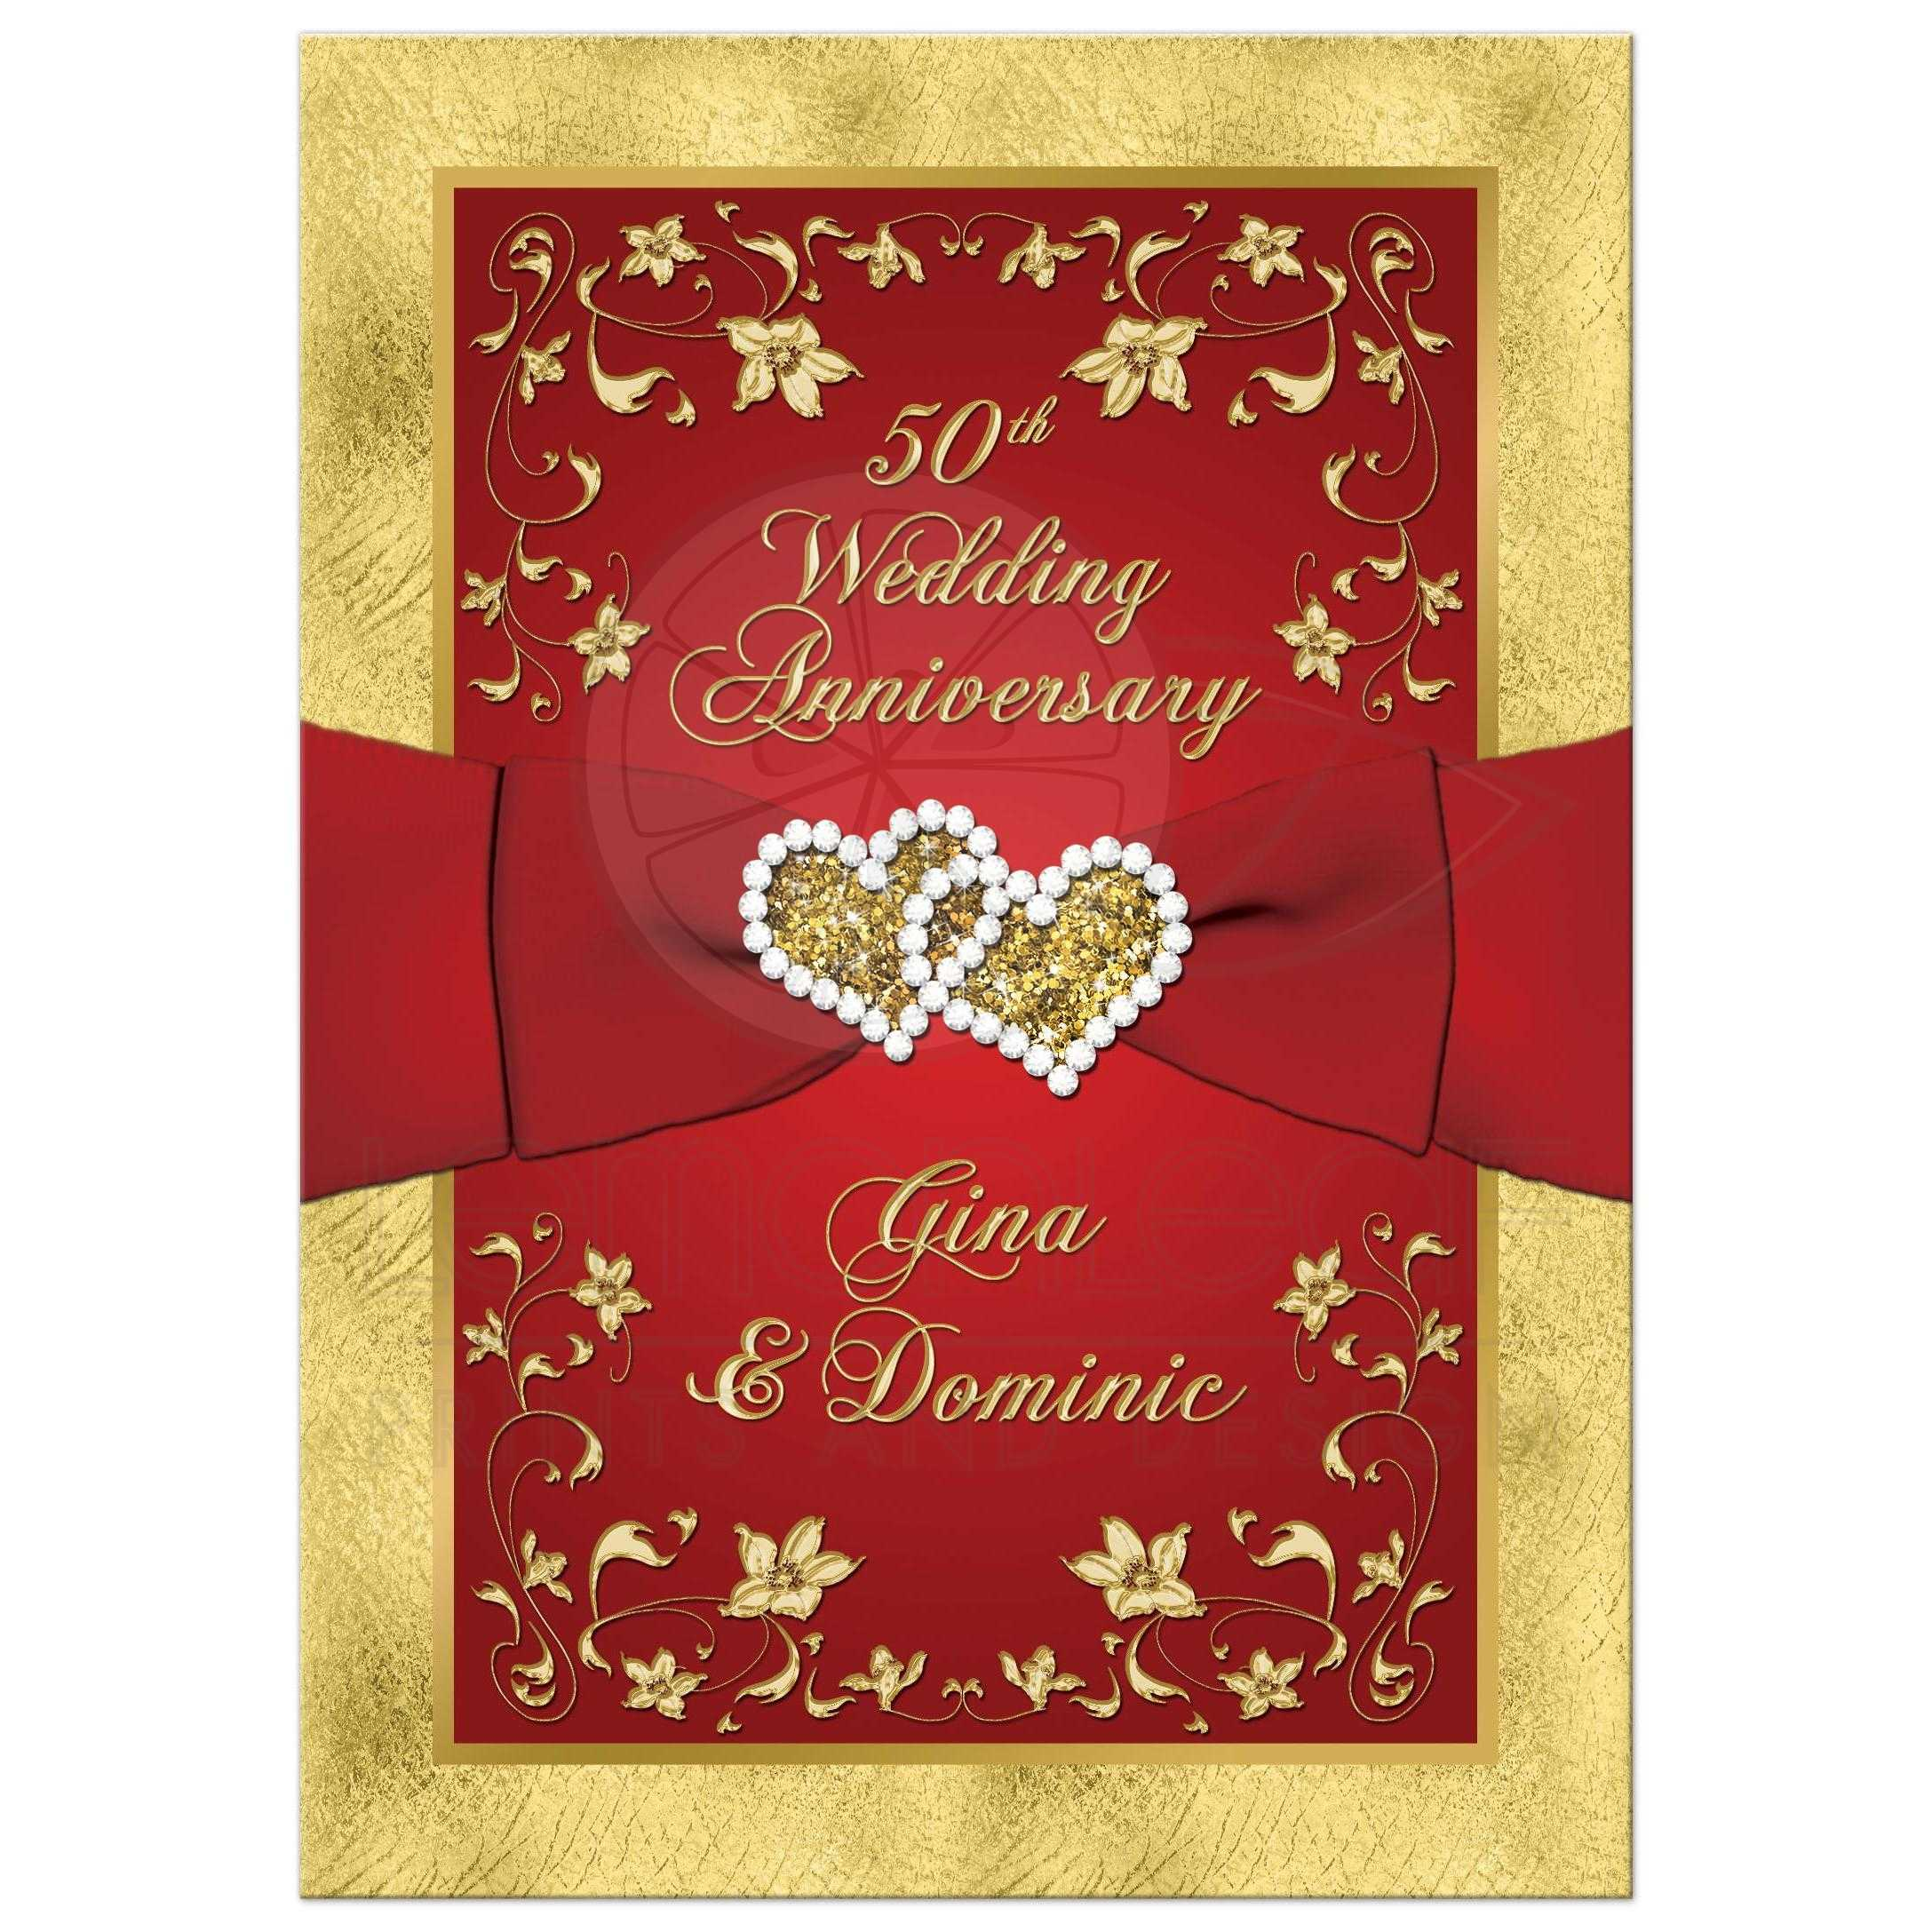 50th Wedding Anniversary Invite Red Gold Floral PRINTED RIBBON